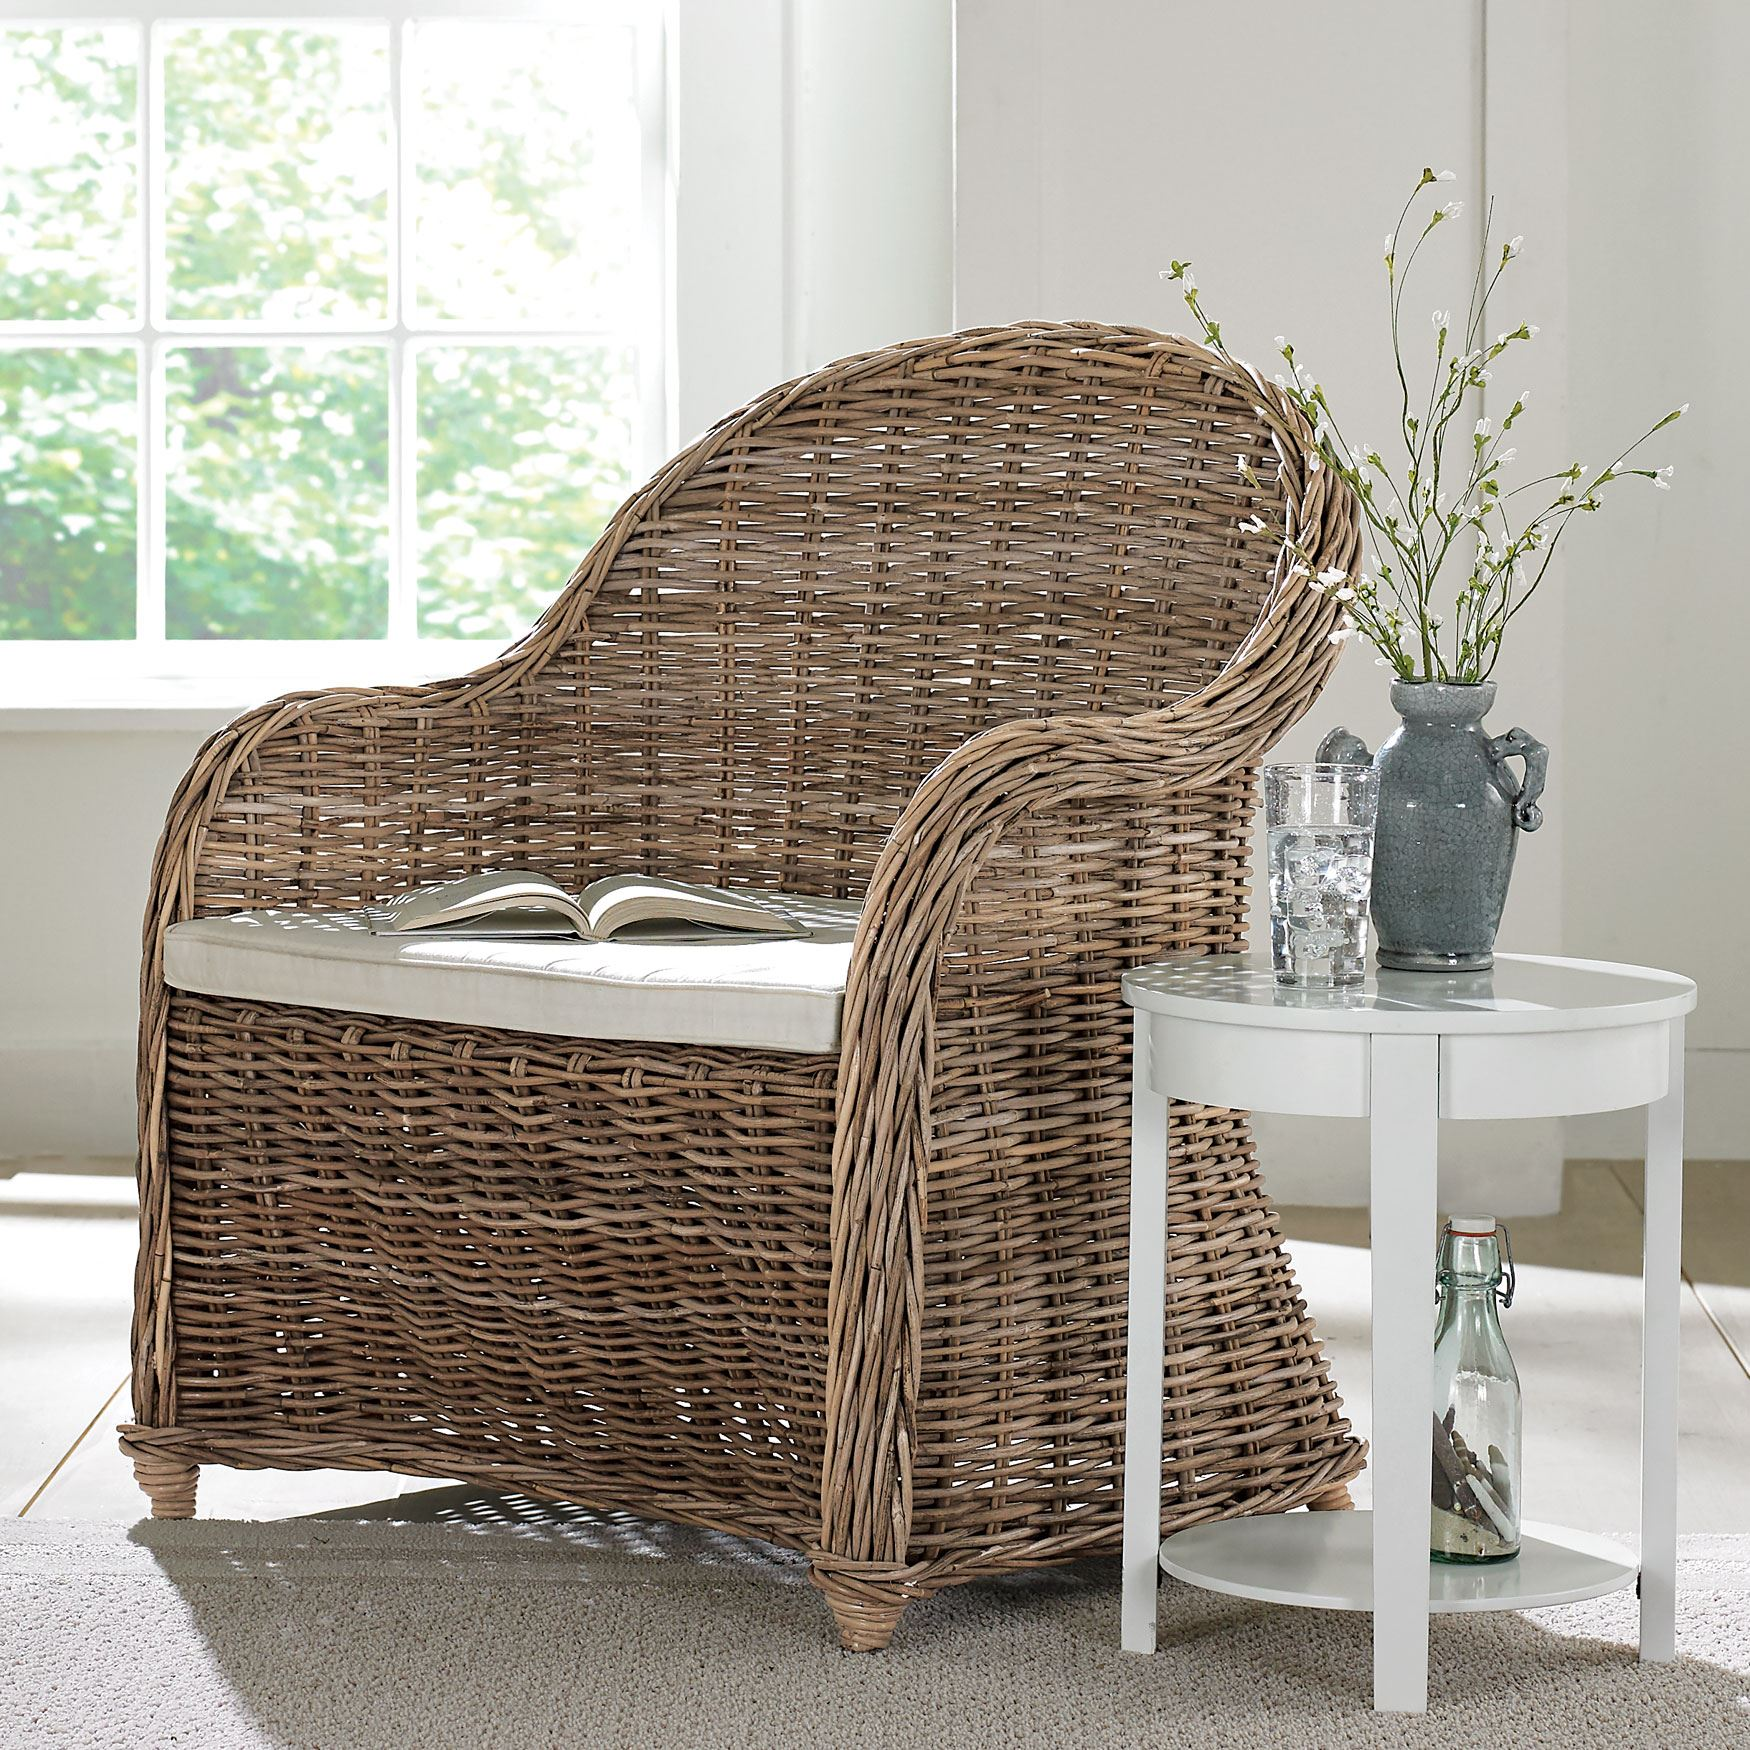 whitman oversized wicker chair plus size furniture brylane home rh brylanehome com